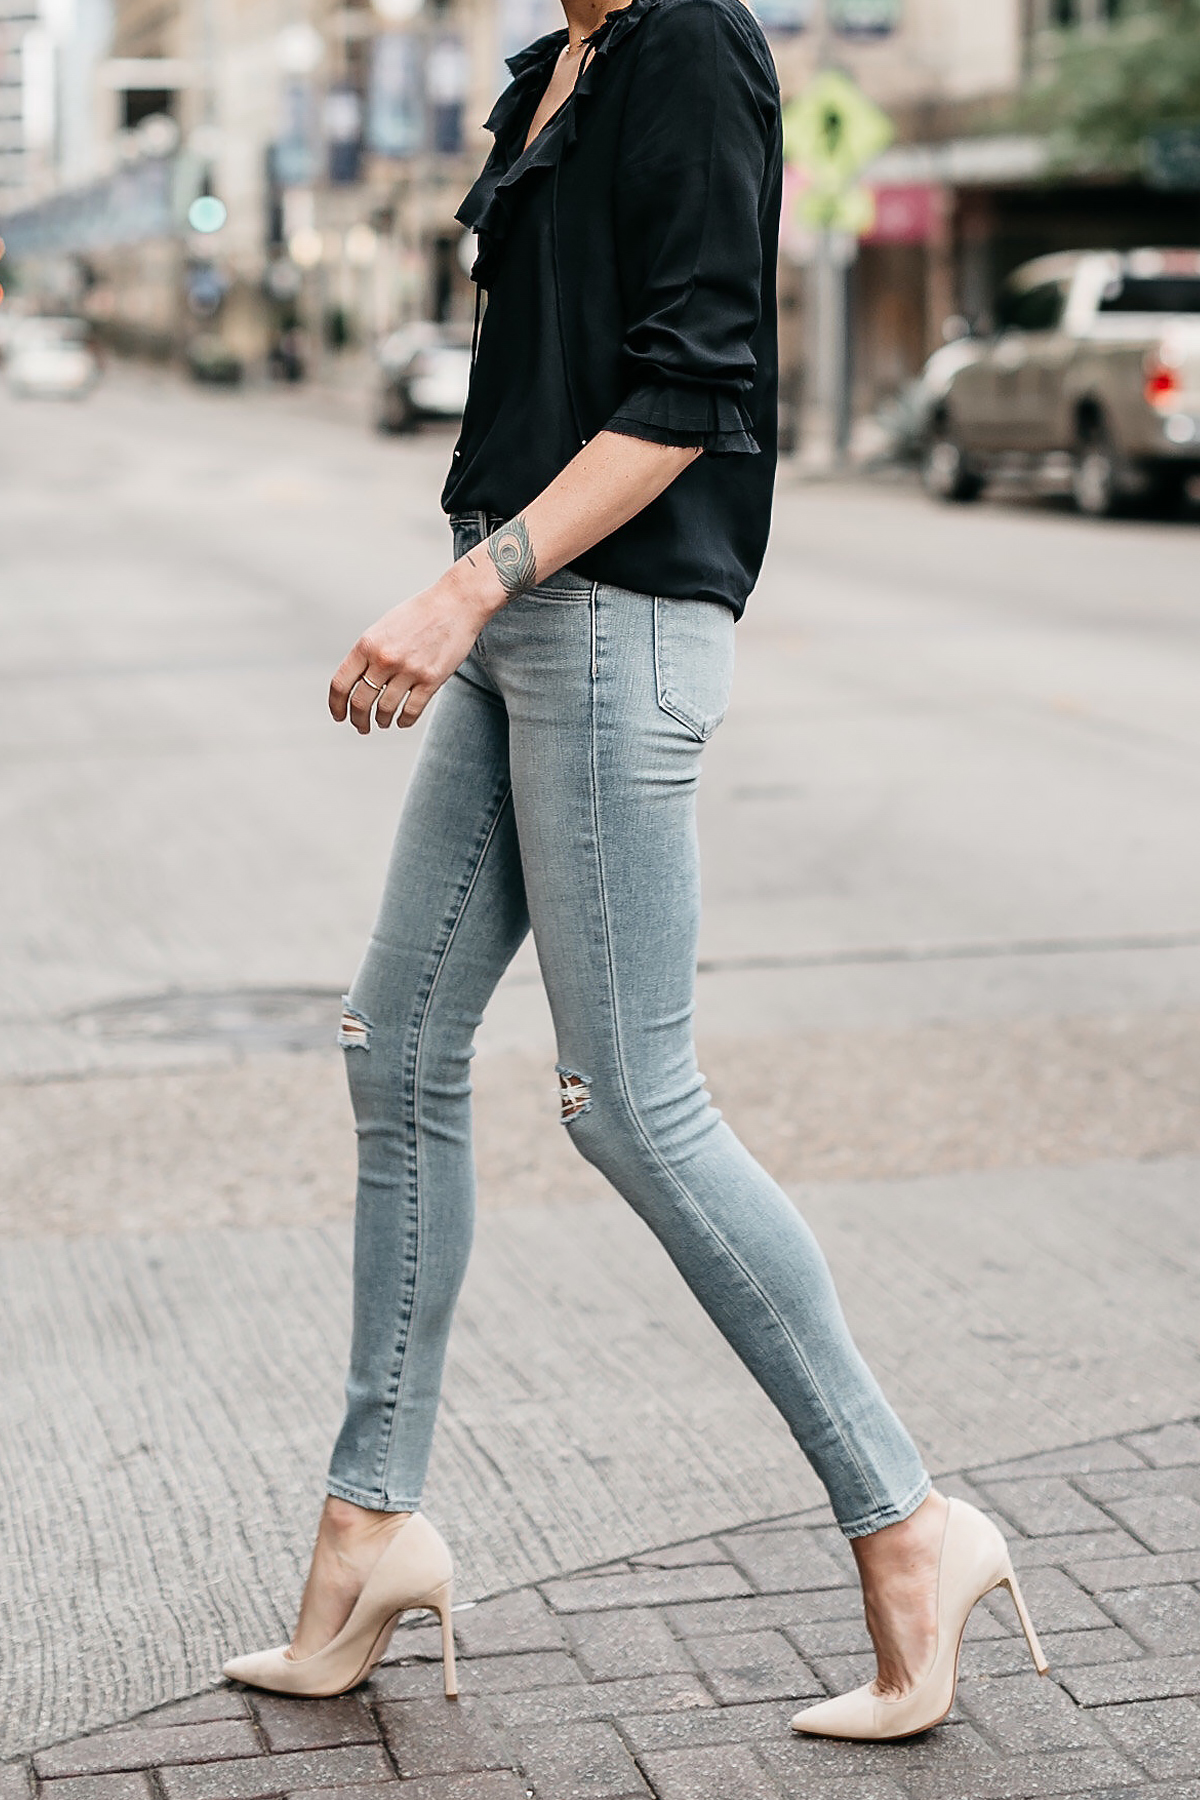 Woman Wearing Black Ruffle Top Denim Ripped Skinny Jeans Nude Pumps Fashion Jackson Dallas Blogger Fashion Blogger Street Style